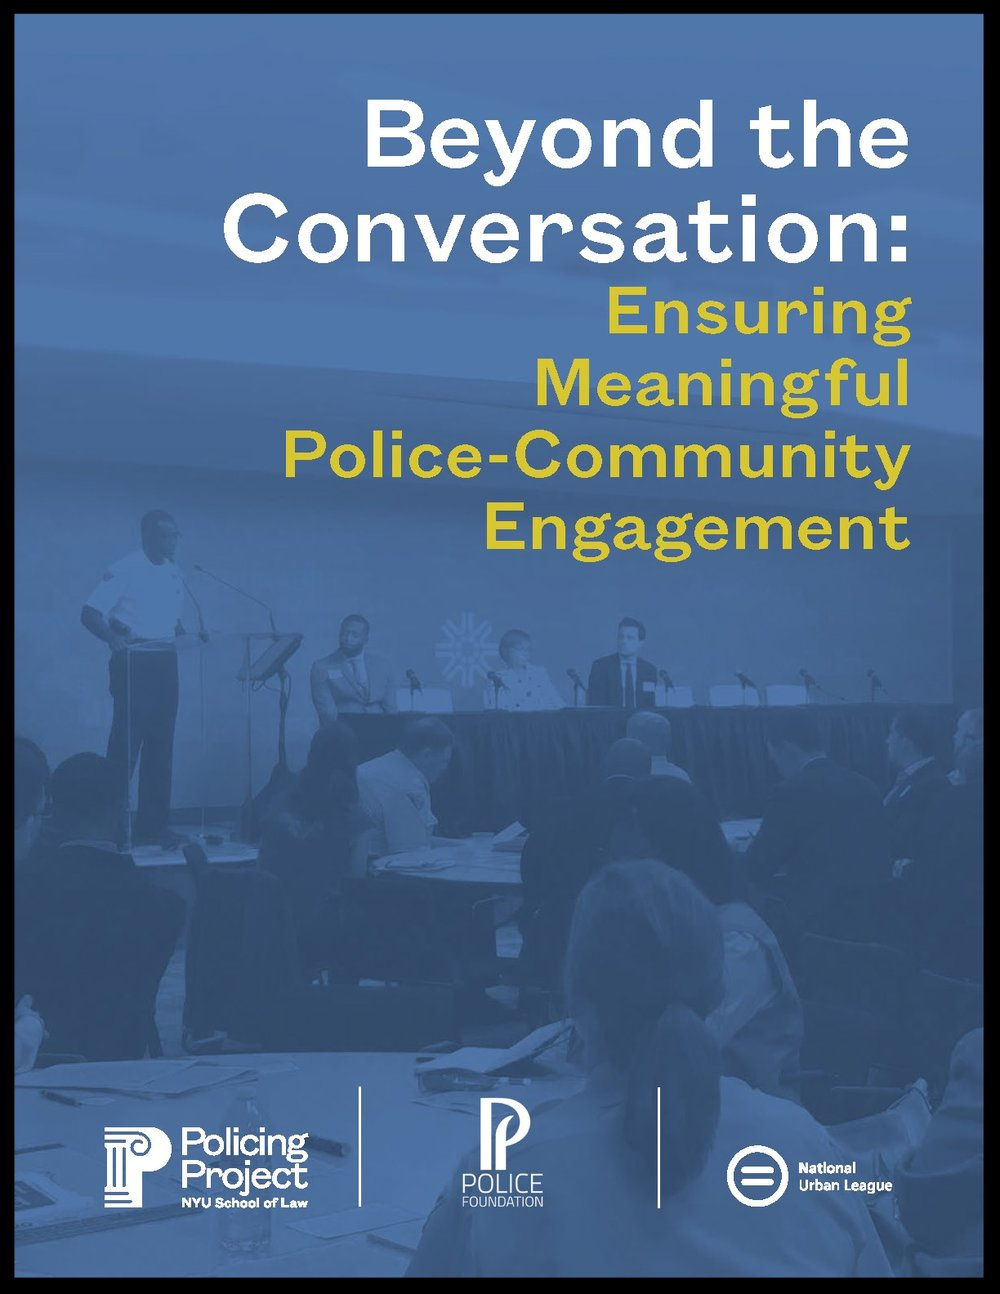 Policing Project Preliminary Report on Community Engagement Study